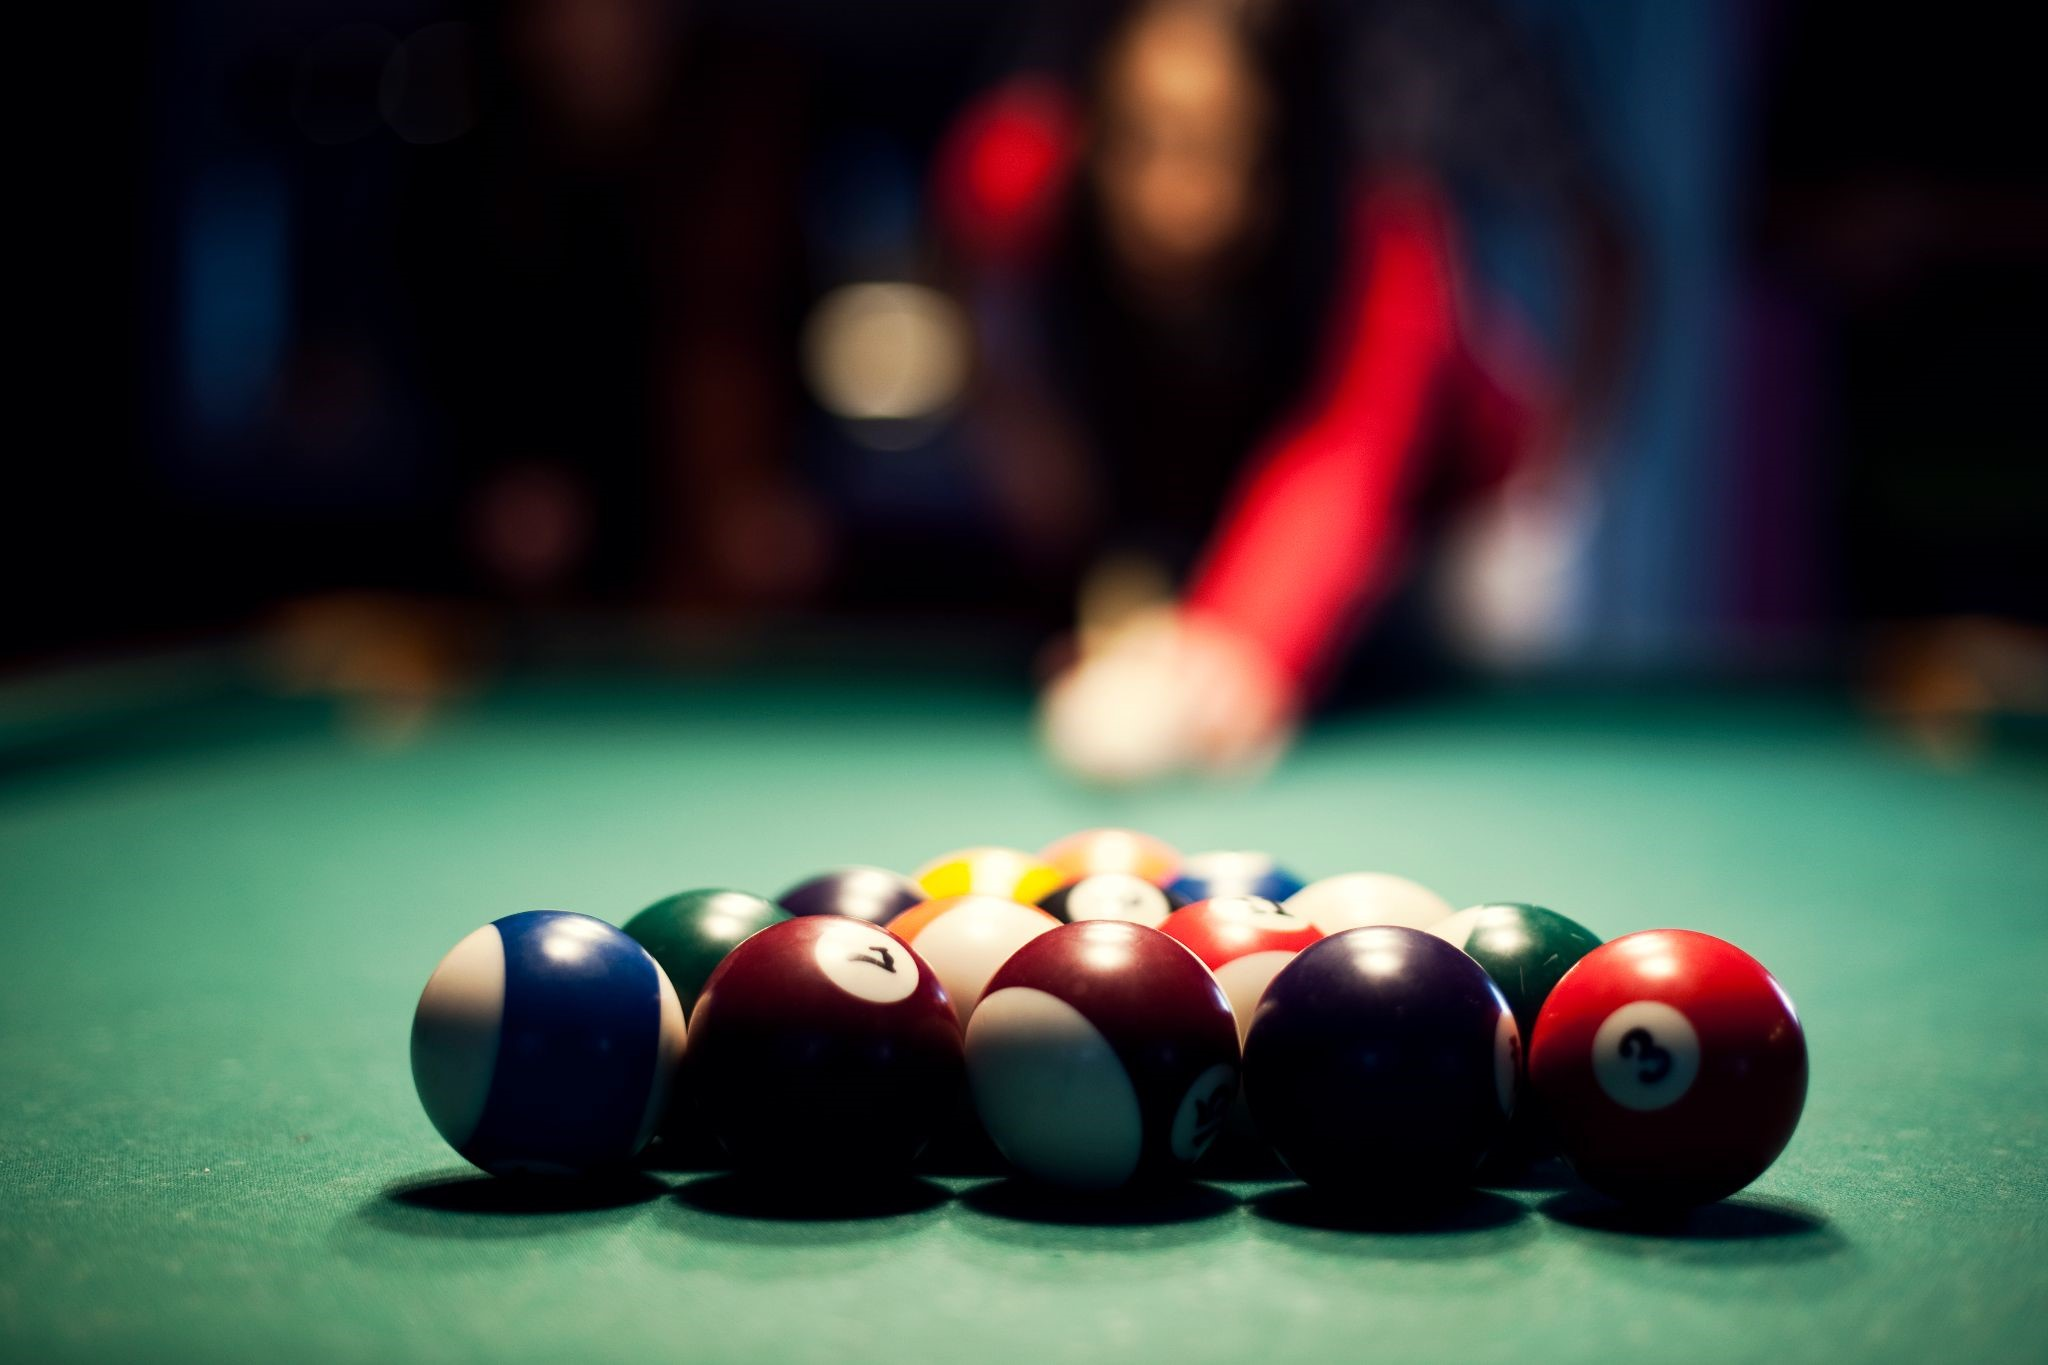 8 Ball Pool Everything You Need to Know